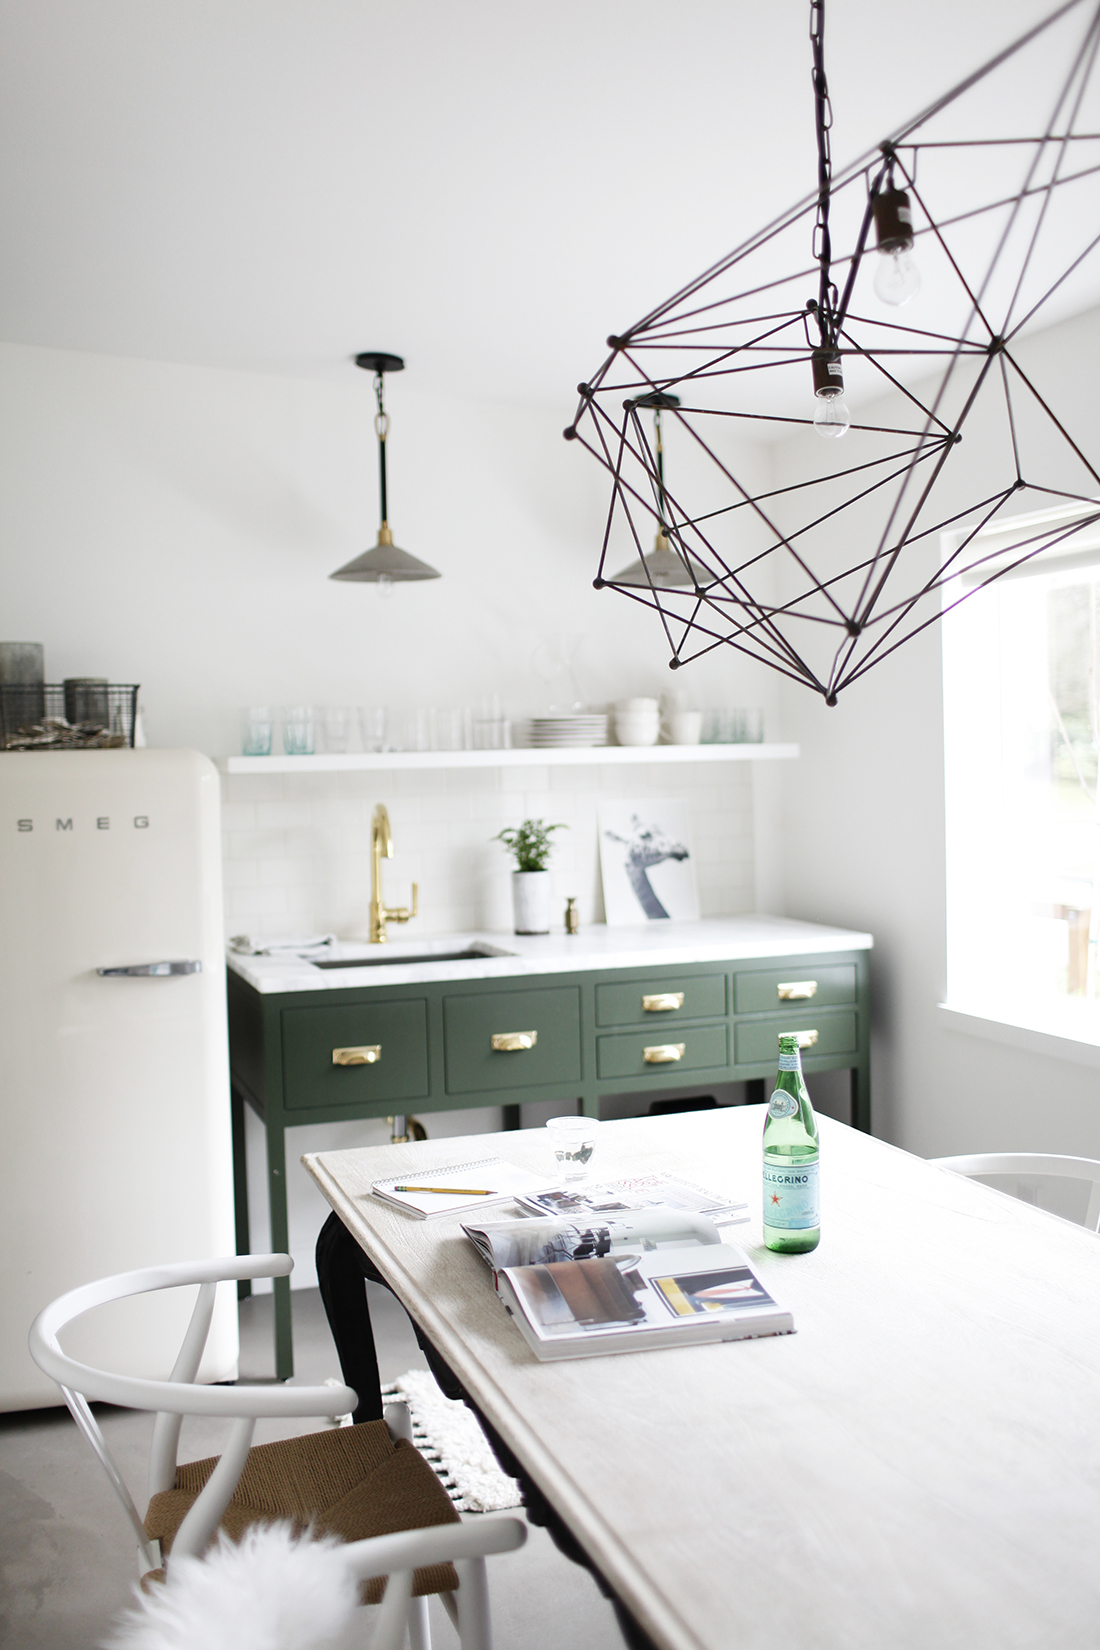 THE COMFORTS OF HOME - Katie wanted the office space to feel like her brand, timeless traditional details with modern lines and amenities. After placing the powder room, office desk, and a Smeg fridge, she had a given amount of space remaining to design and place a small kitchenette.